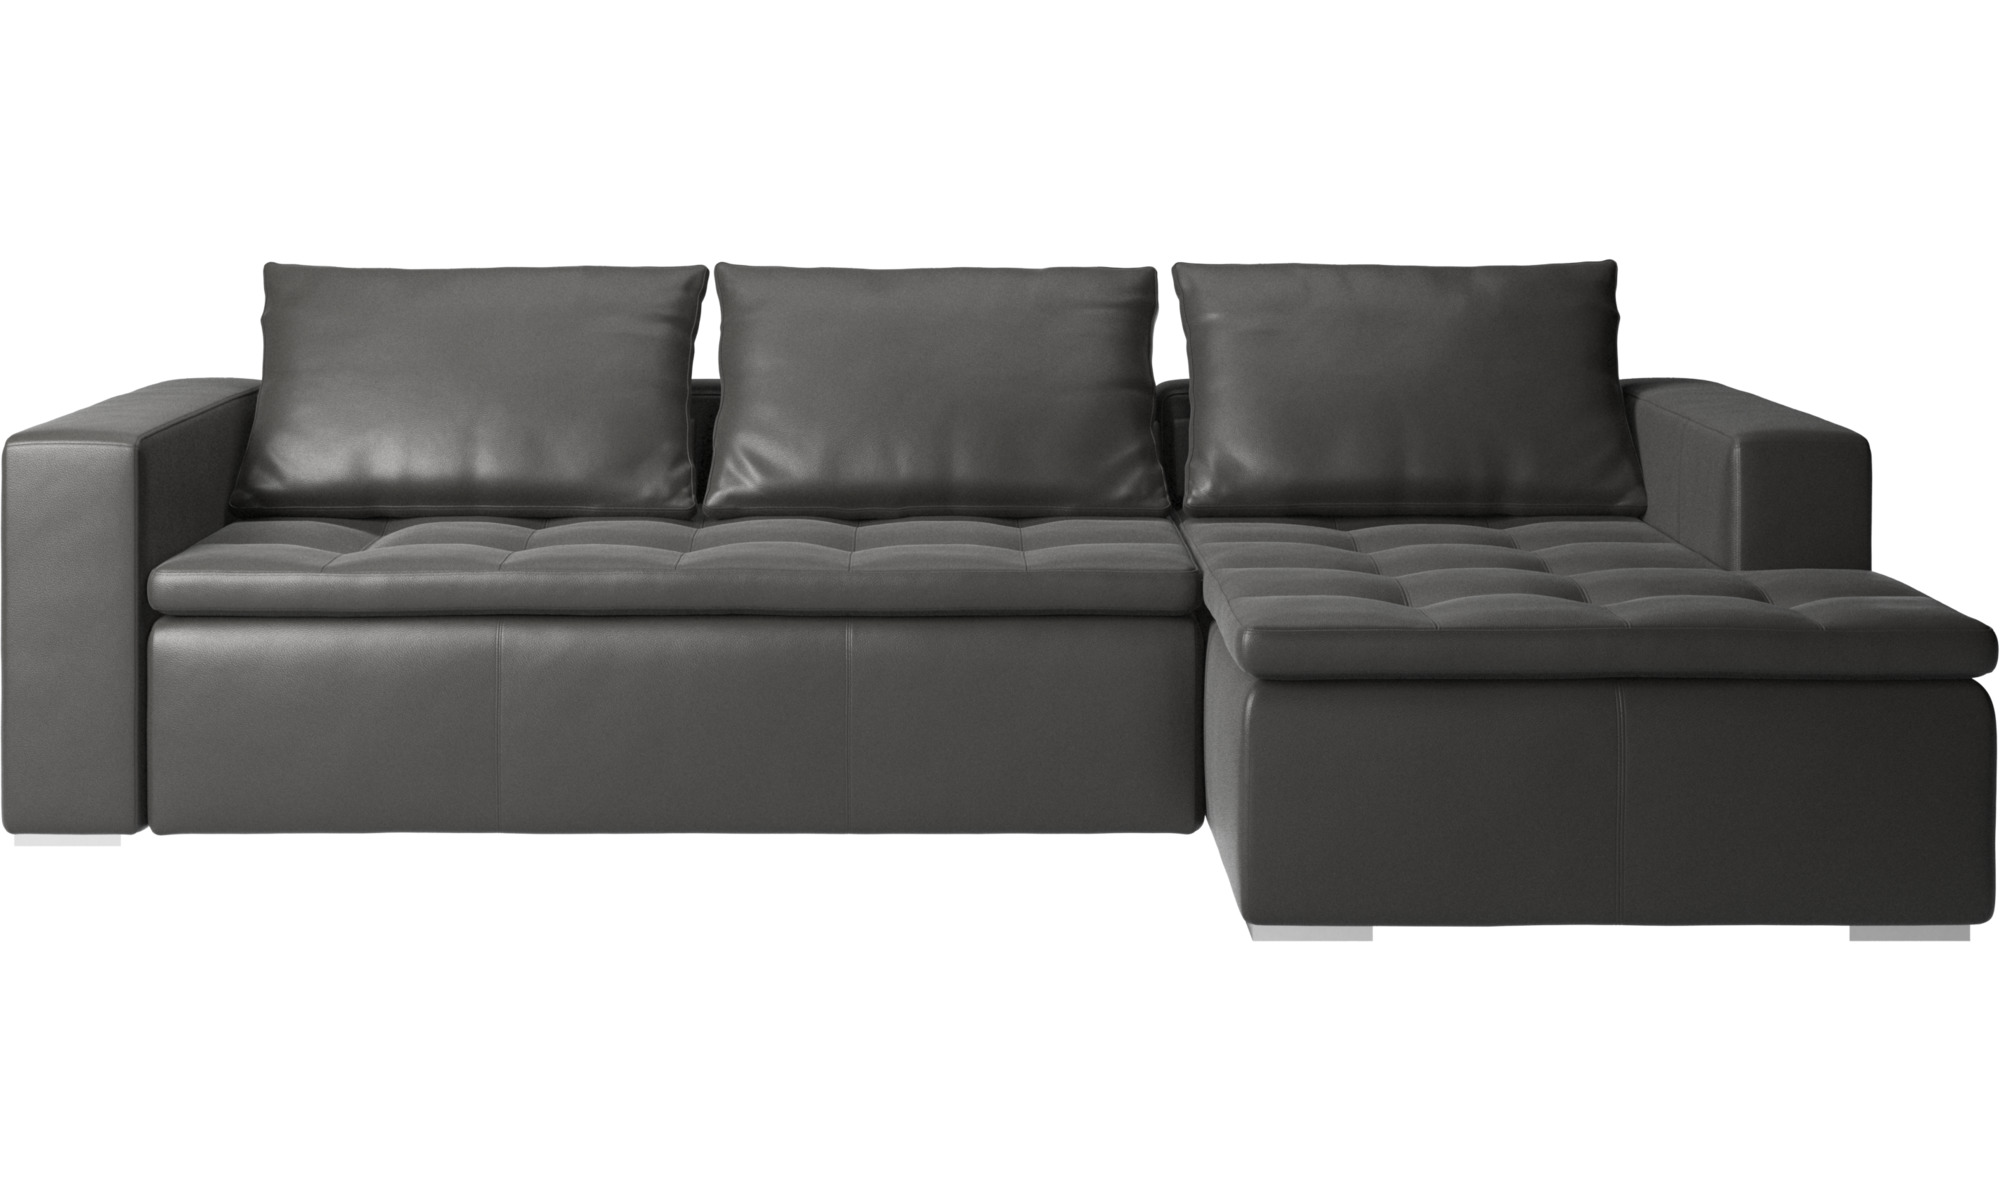 chaise longue sofas mezzo sofa with resting unit boconcept. Black Bedroom Furniture Sets. Home Design Ideas